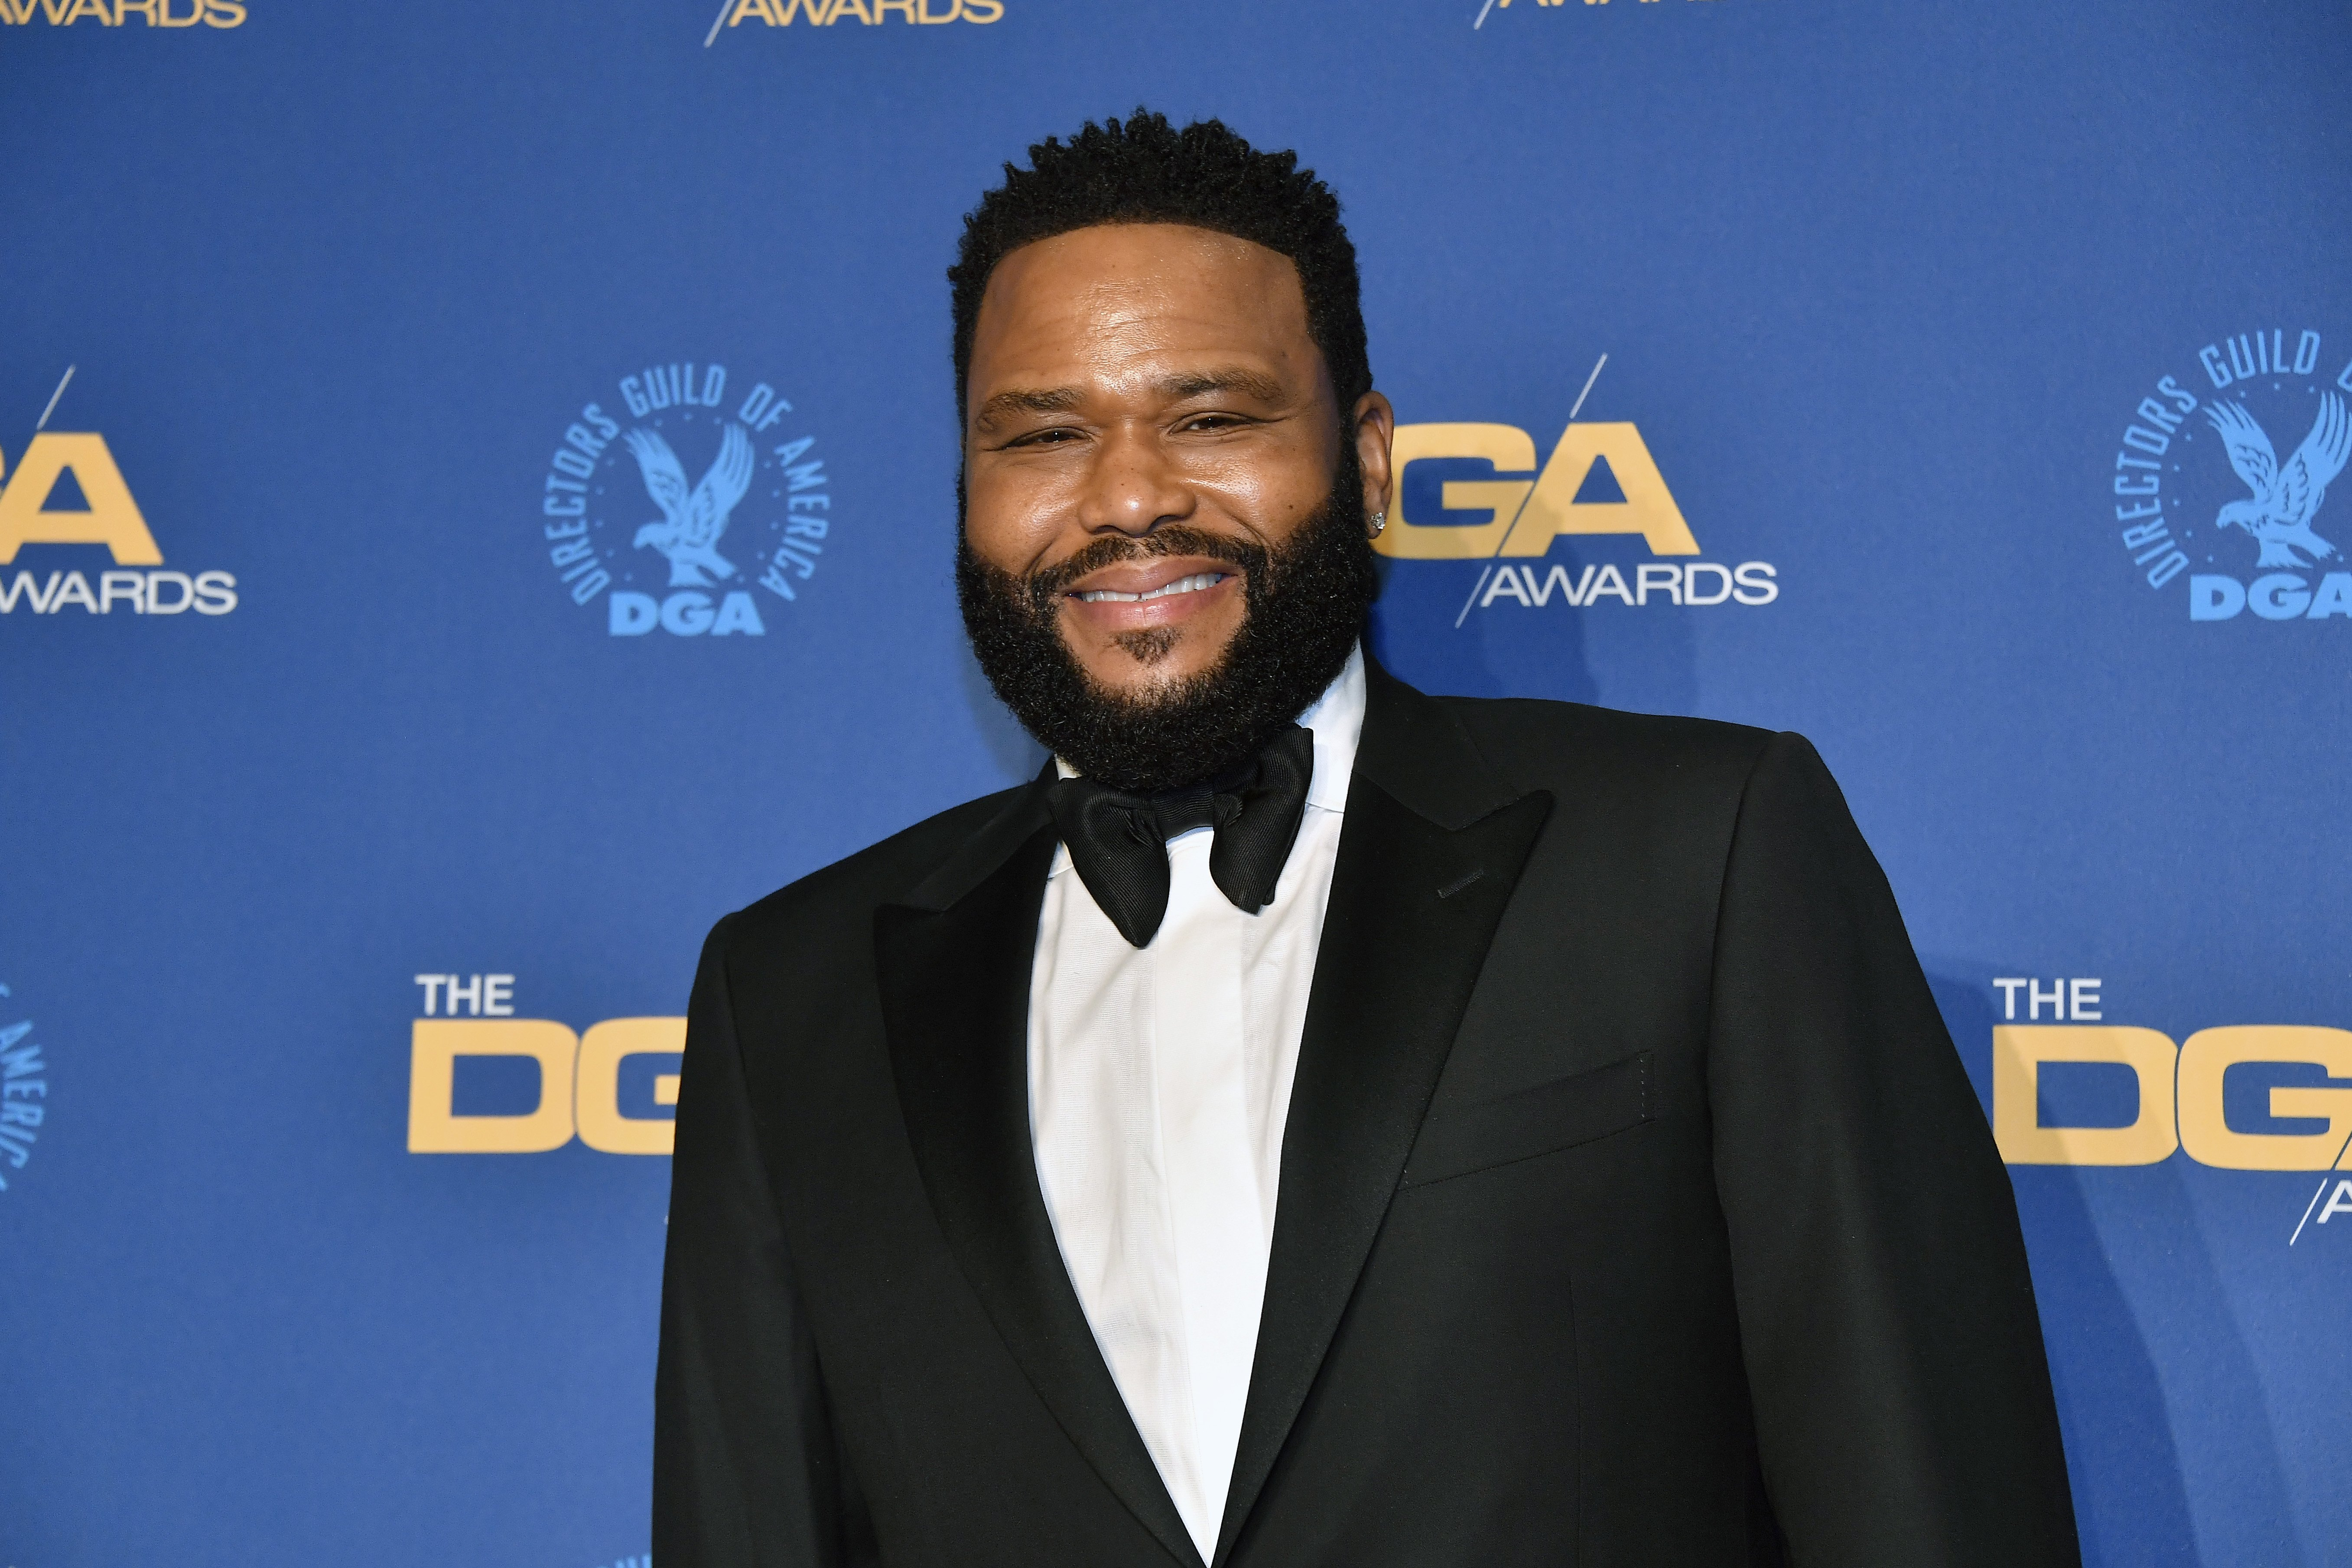 Anthony Anderson at the 72nd Annual Directors Guild of America Awards at The Ritz Carlton on January 25, 2020 in Los Angeles, California. | Source: Getty Images